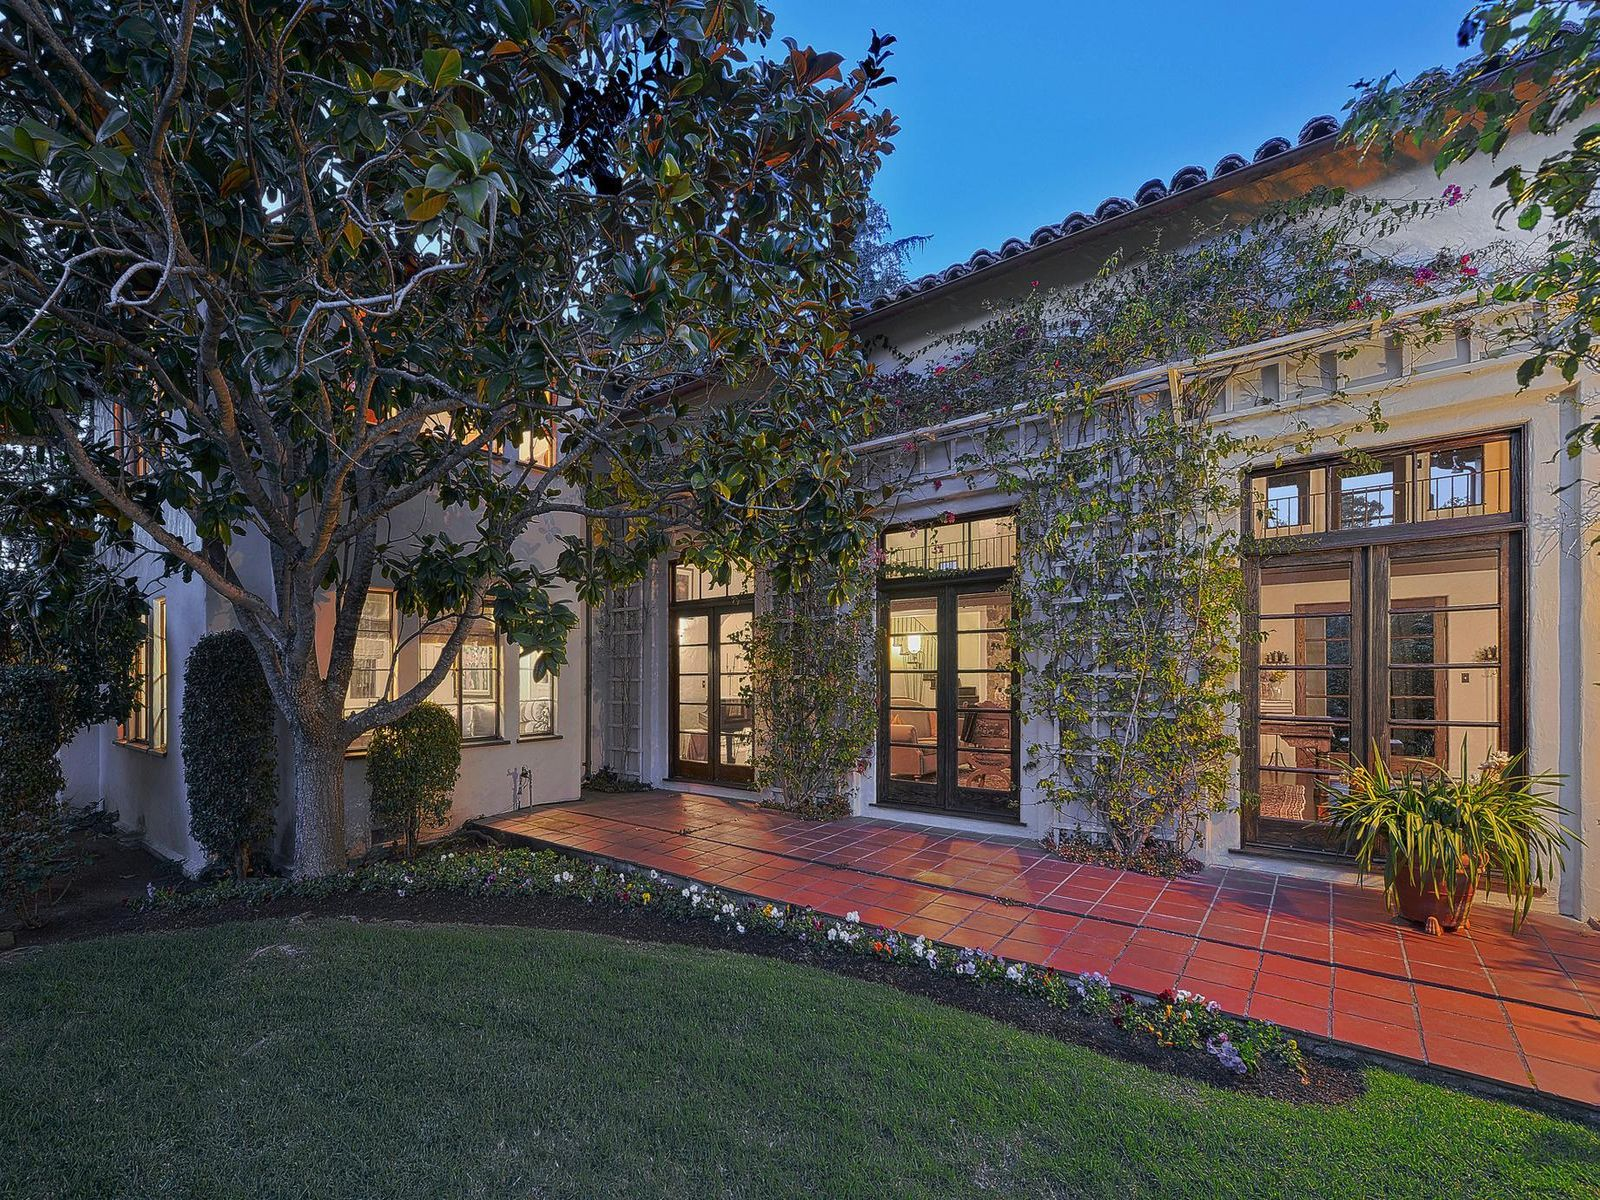 Spanish Colonial Revival Villa